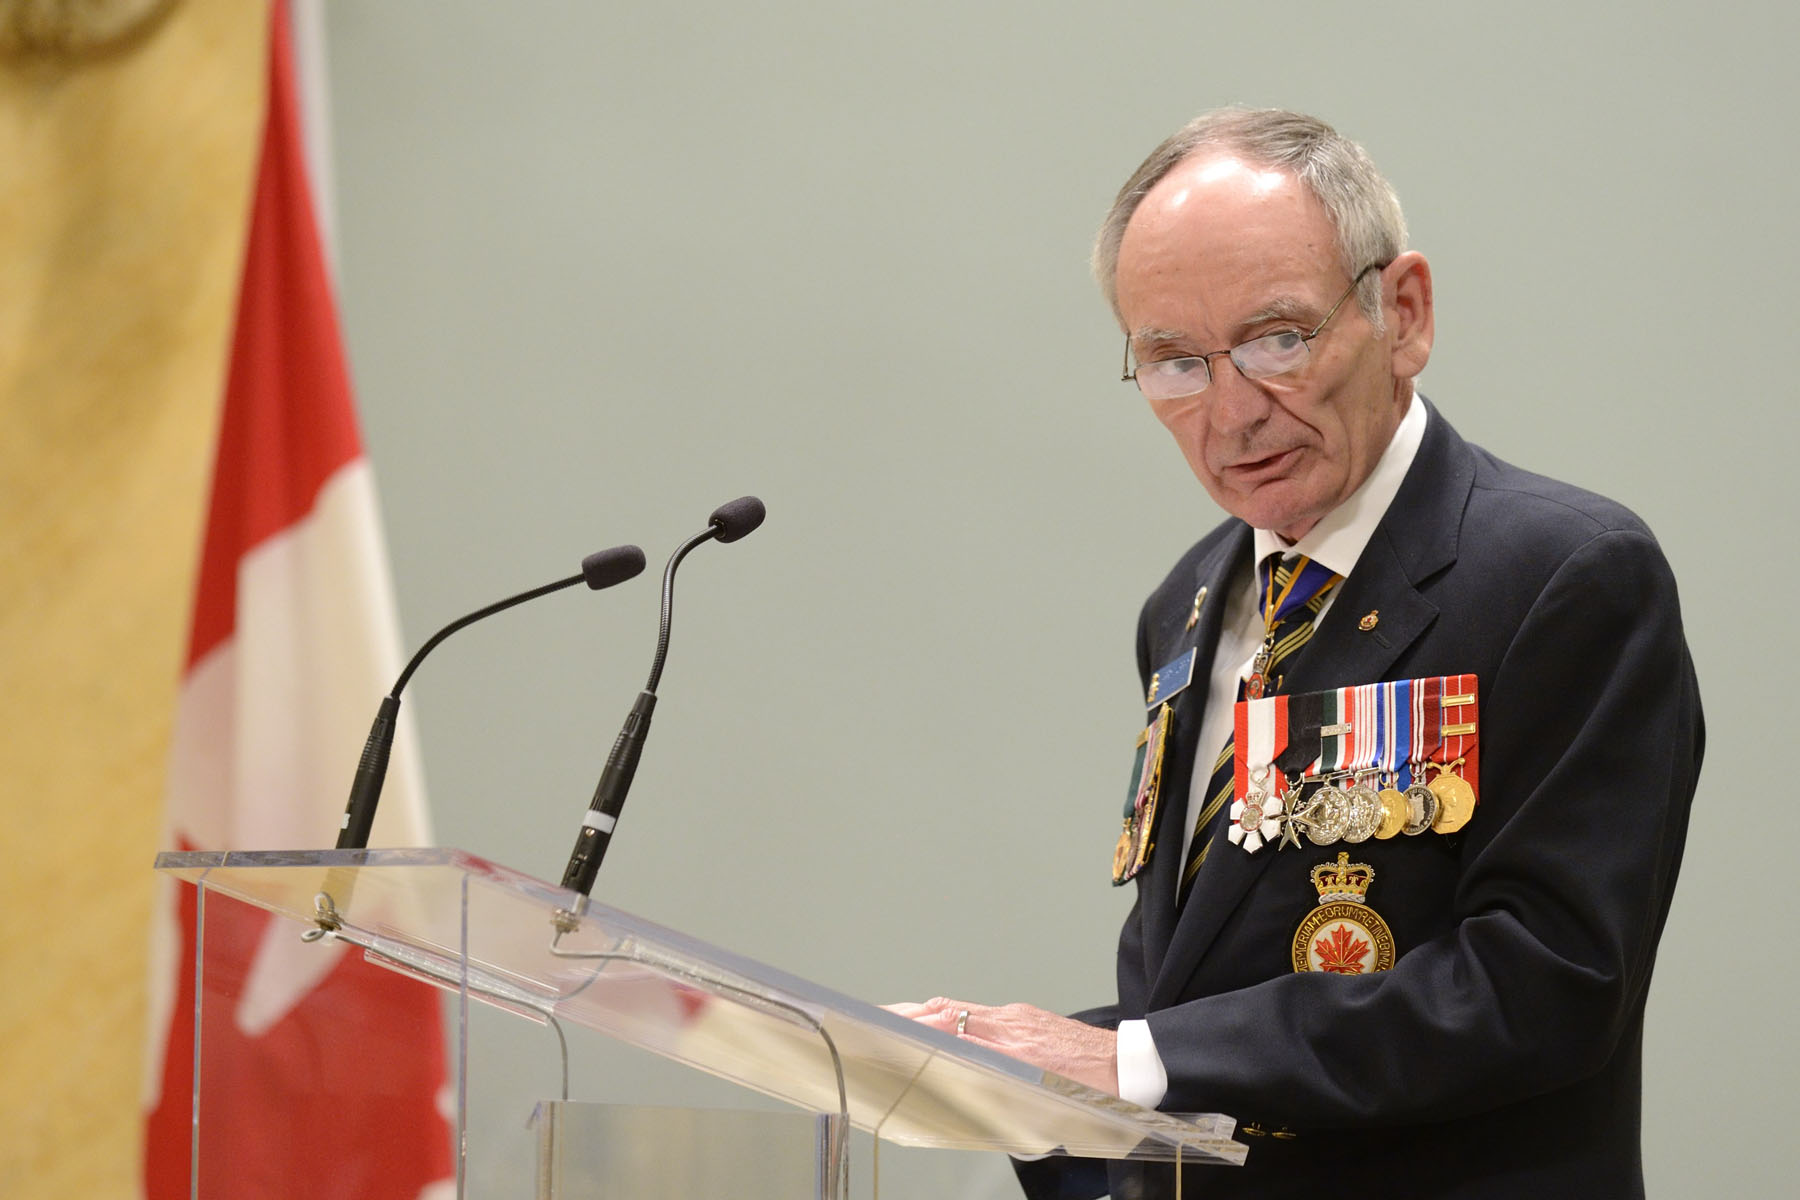 Le grand président de la Légion royale canadienne, Larry Murray, a pris la parole.